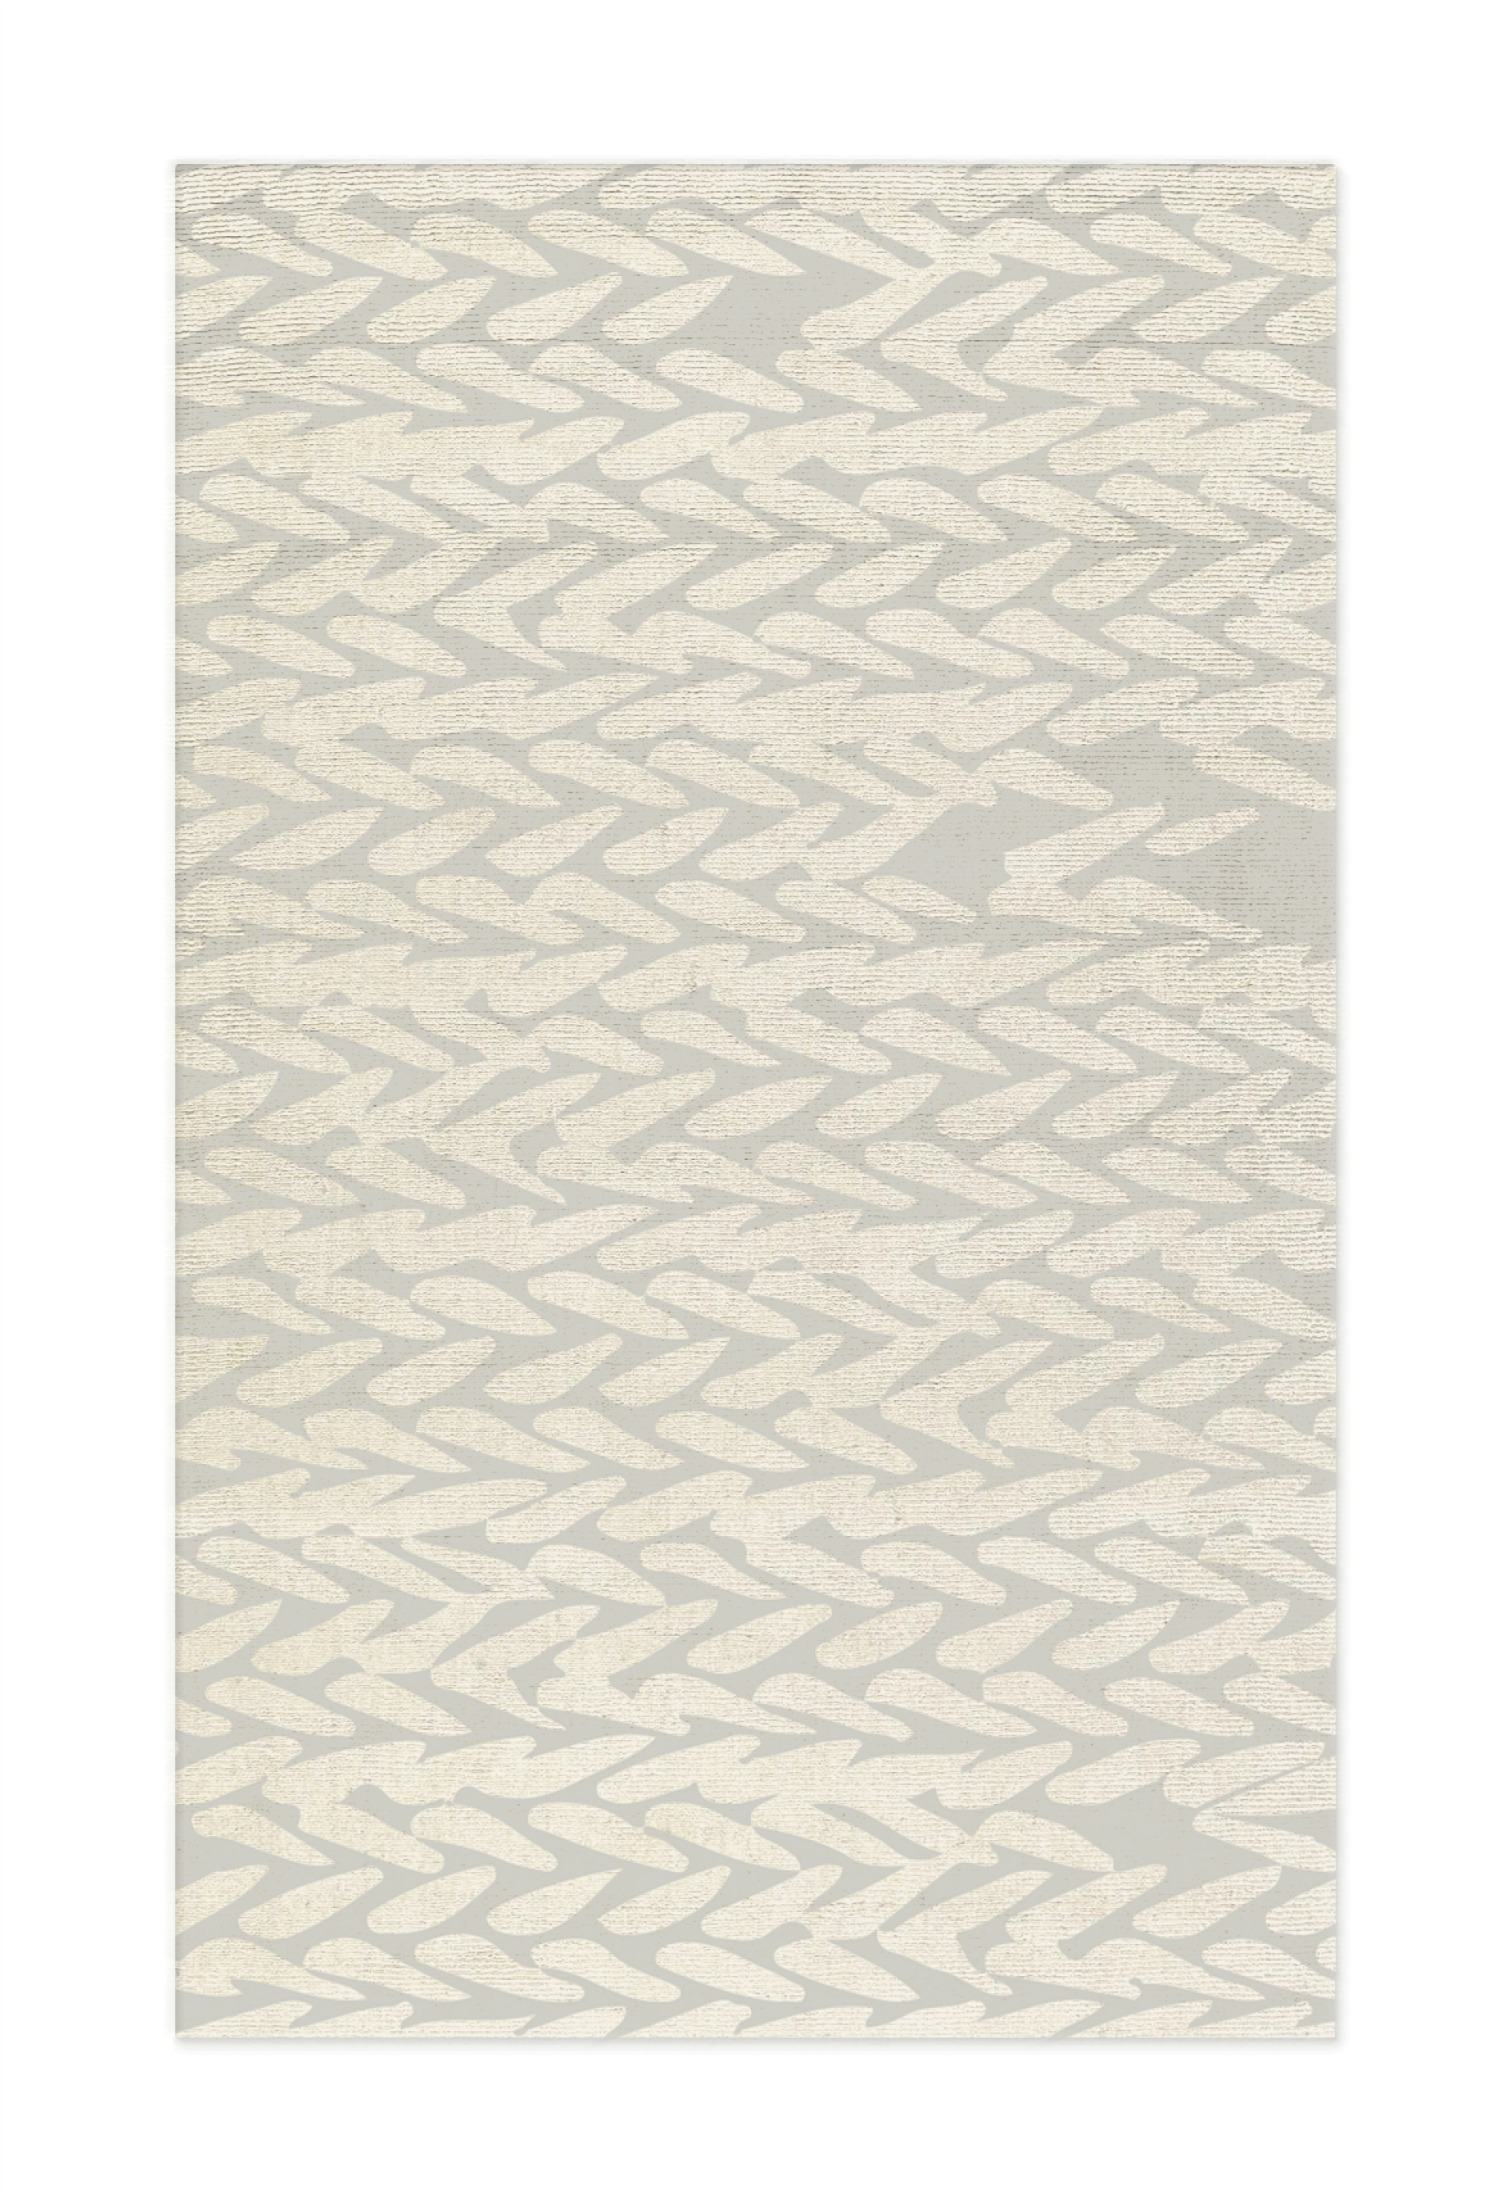 BRABBU Products to Integrate Your Home Décor in 2021 brabbu productsBRABBU Products to Integrate Your Home Décor in 2021wari rug 1 HR 1